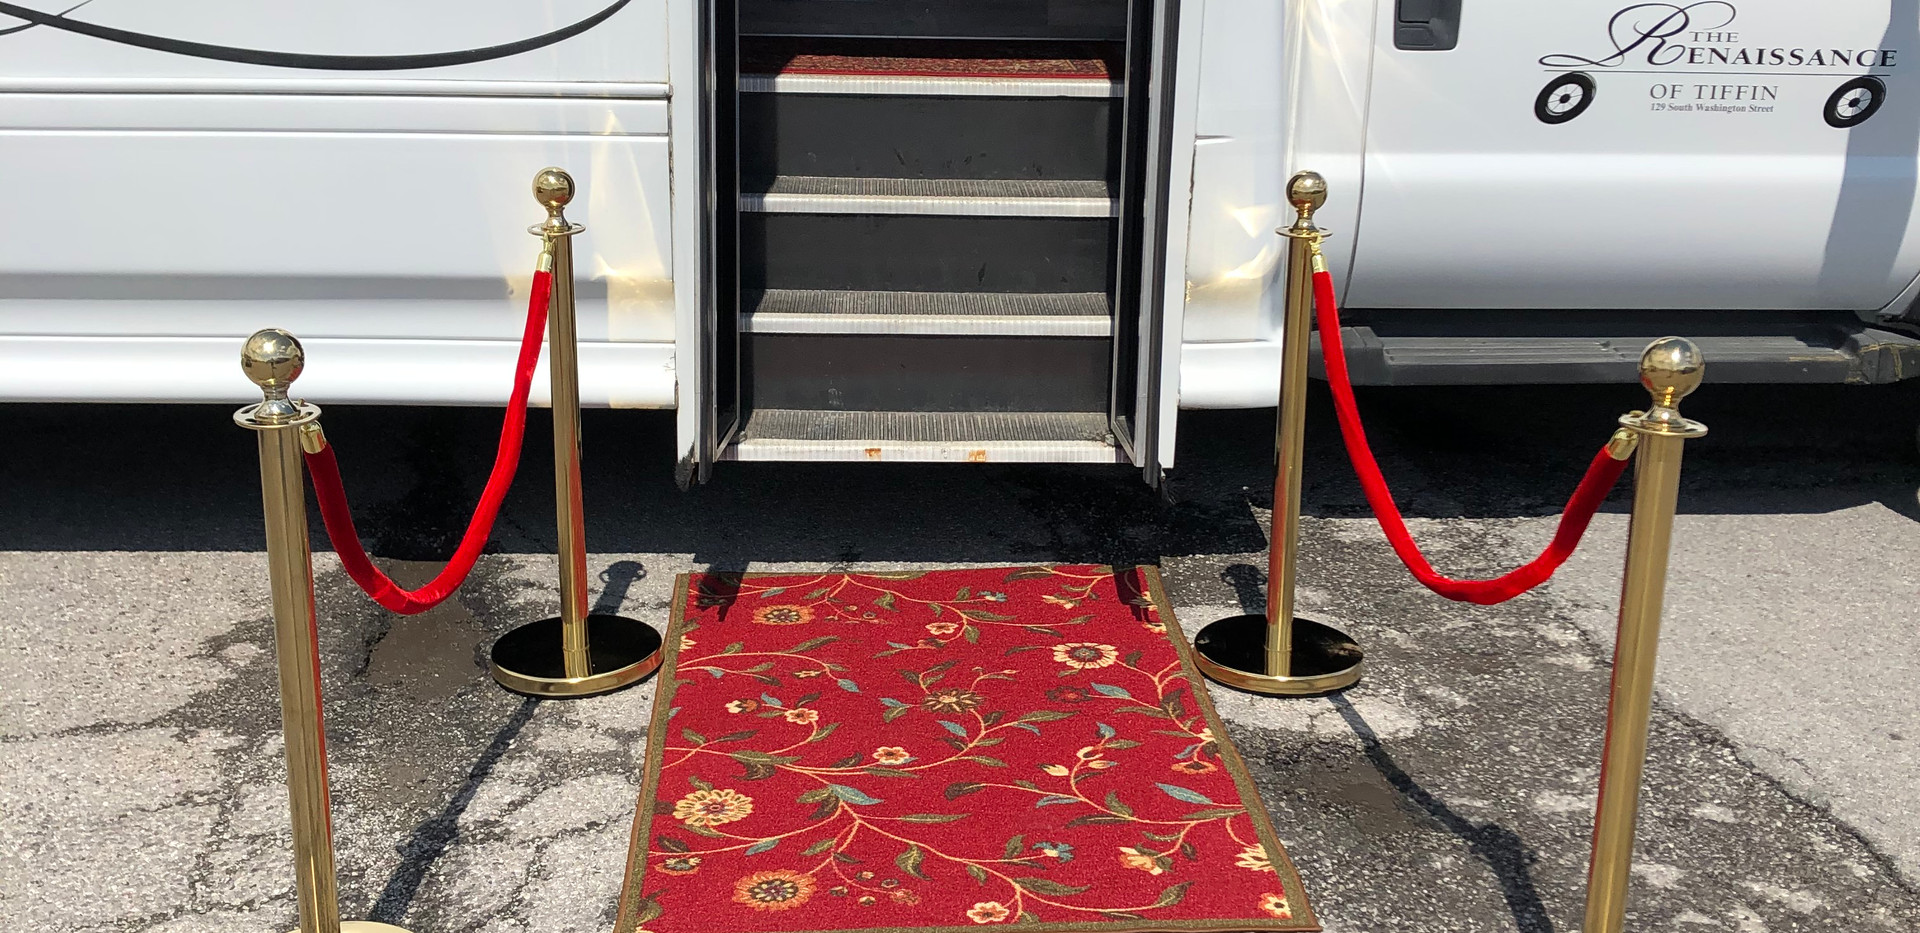 We roll out the red carpet for your occasion!